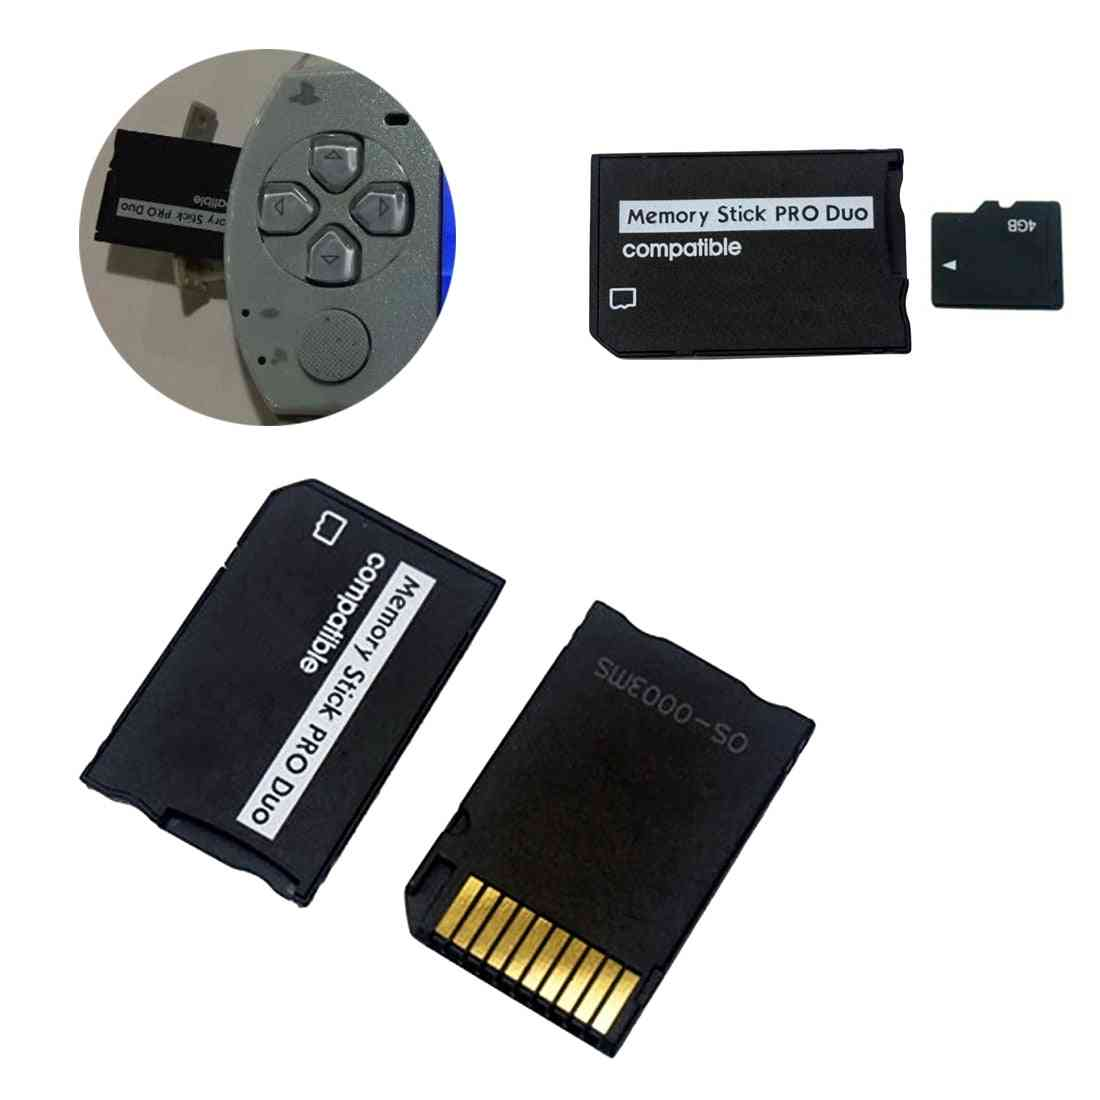 Micro Sd To Memory Card Adapter Stick For Psp